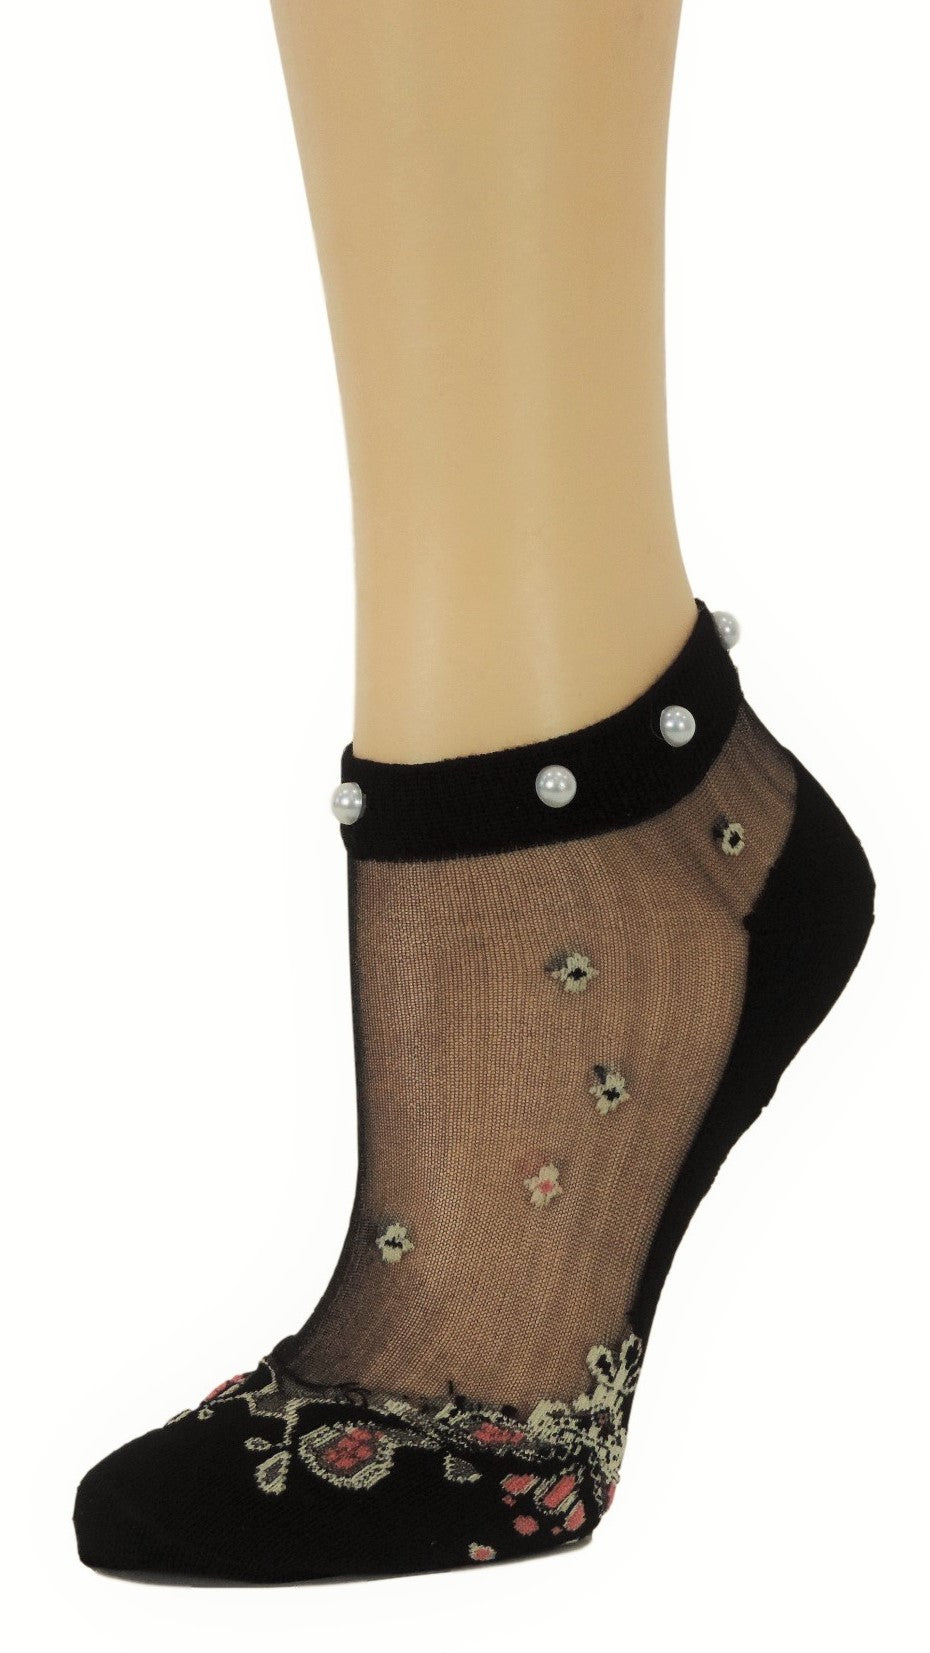 Glorious Chandelier Ankle Custom Sheer Socks with beads - Global Trendz Fashion®